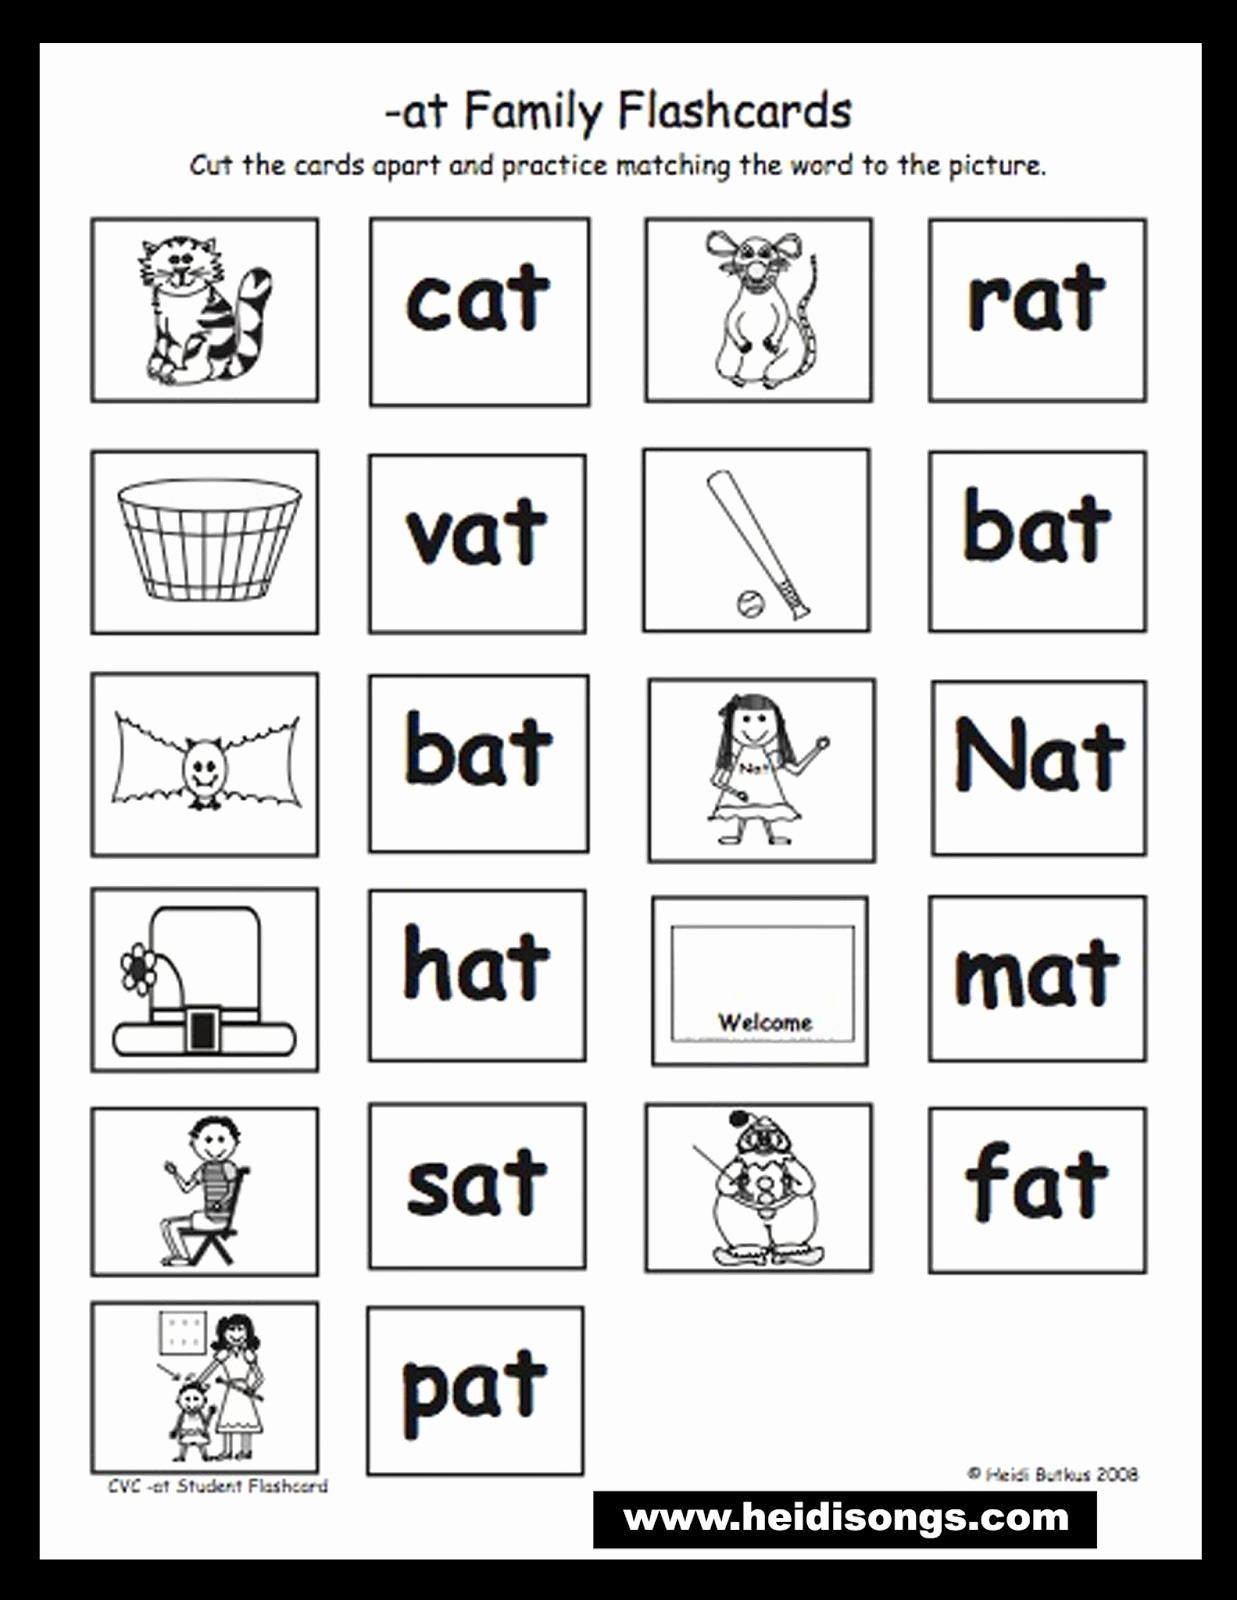 Rhyming Words Worksheet Kindergarten Math Printable Activities - Free Printable Rhyming Words Flash Cards